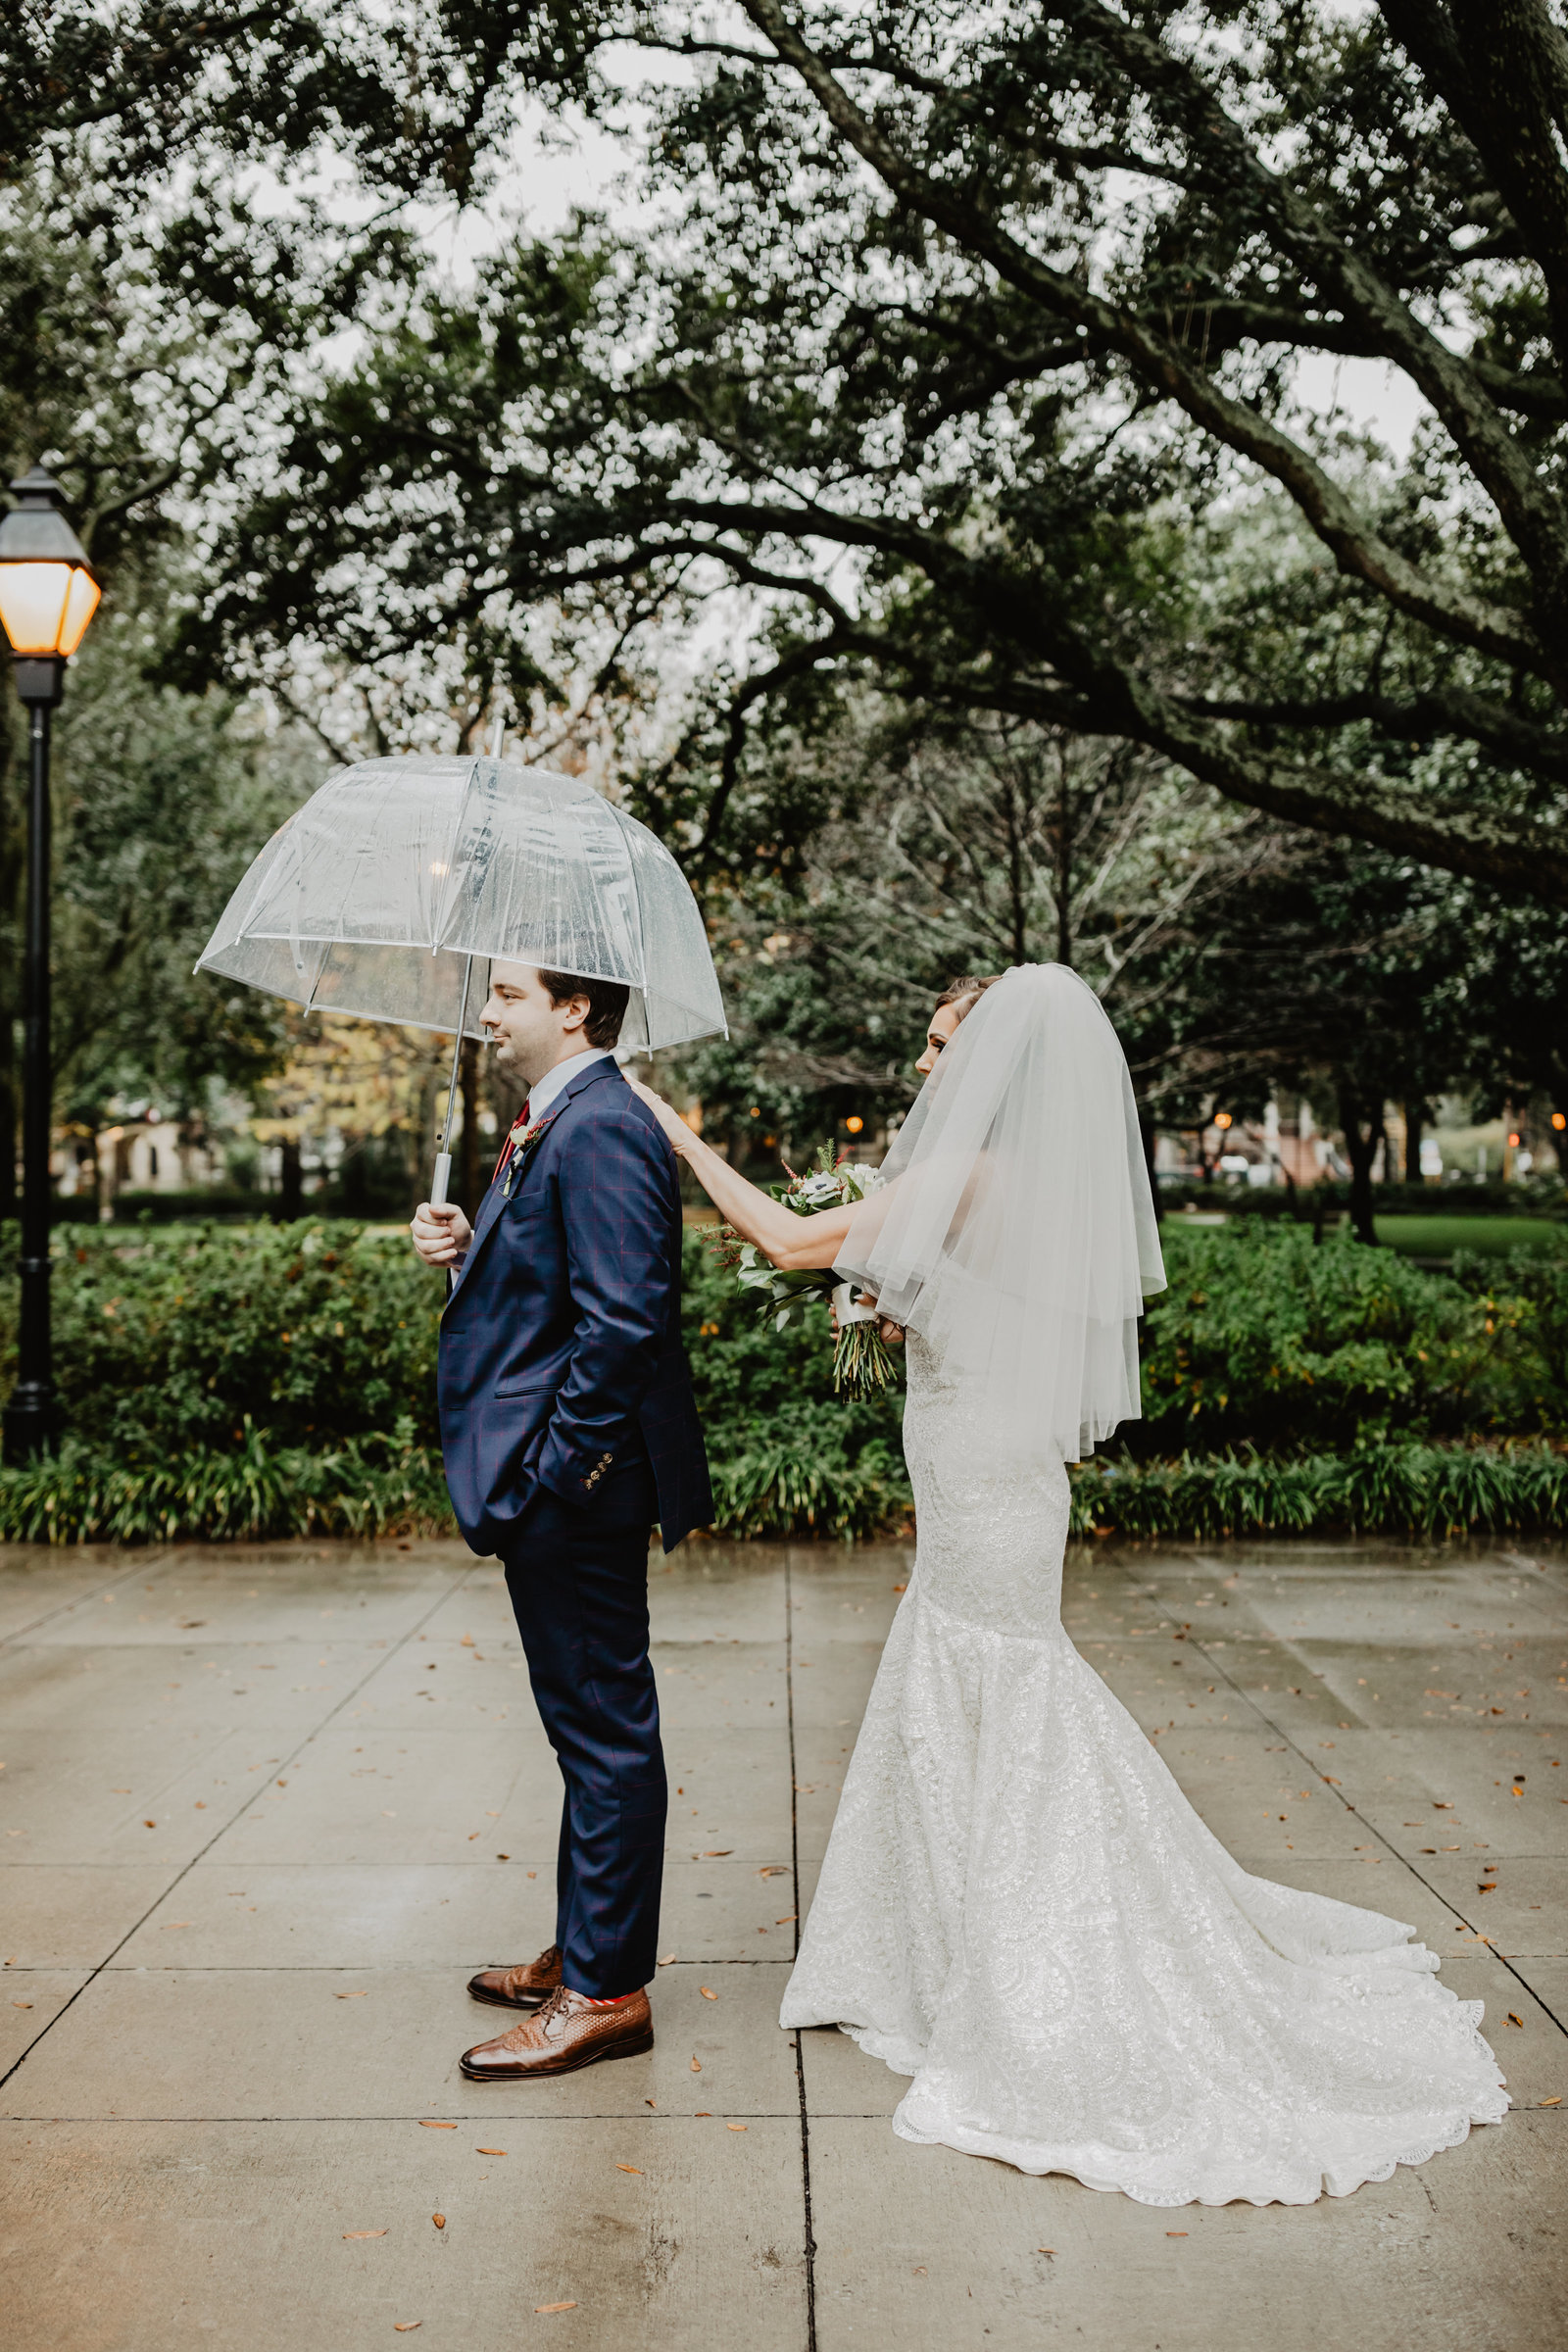 Bride greets Groom on rain day for the first time in Savannah